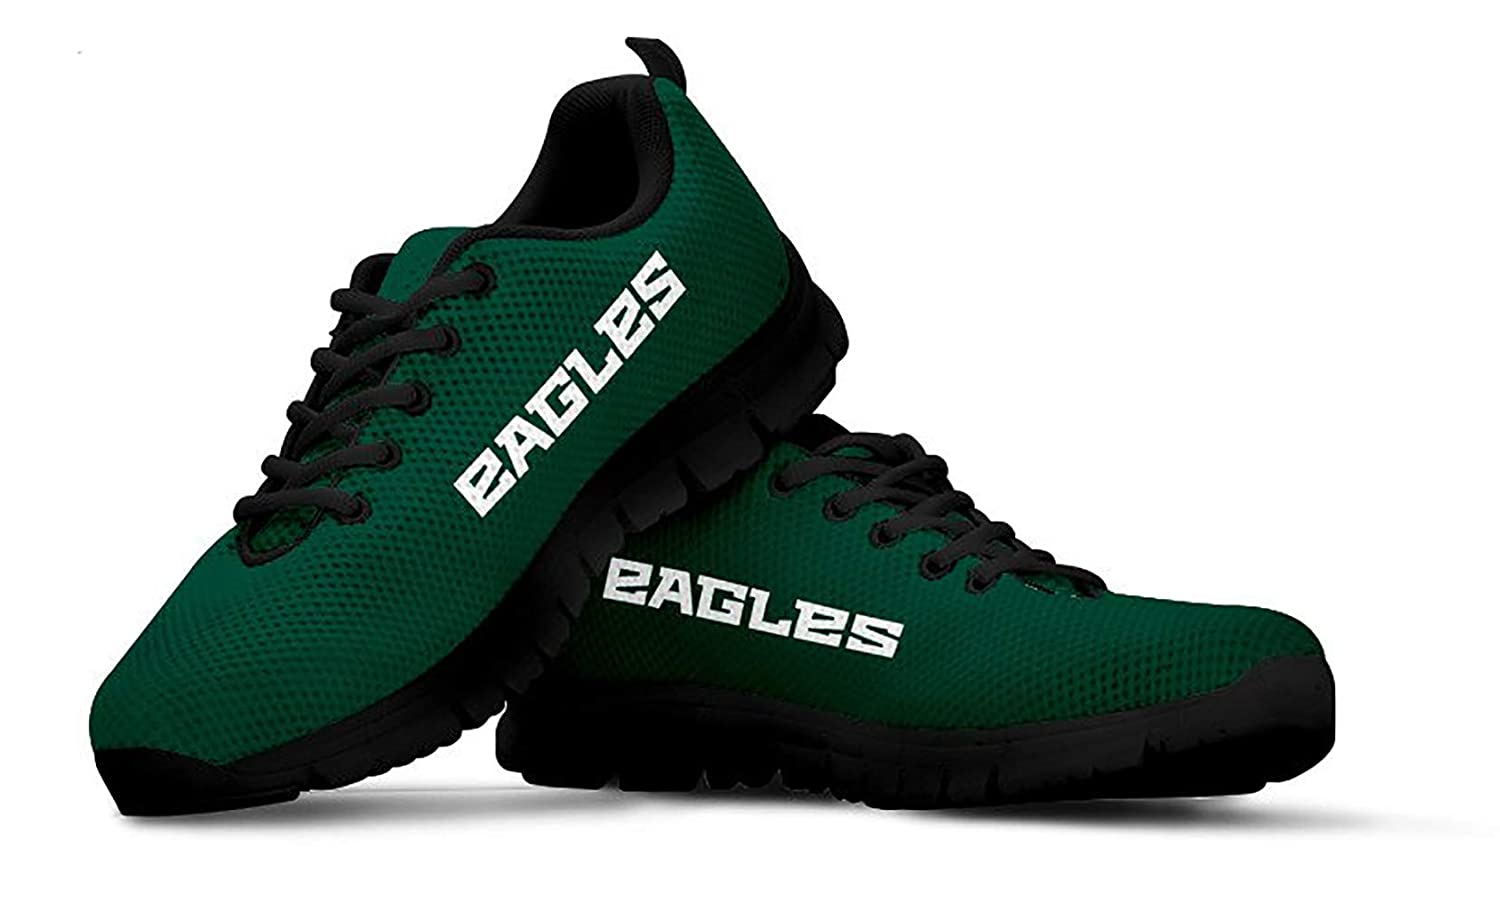 Philadelphia Eagles Themed Casual Athletic Running Shoe Mens Womens Kids Sizes Eagle Football Apparel Gear And Gifts For Men Women Kid Fan Merchandise